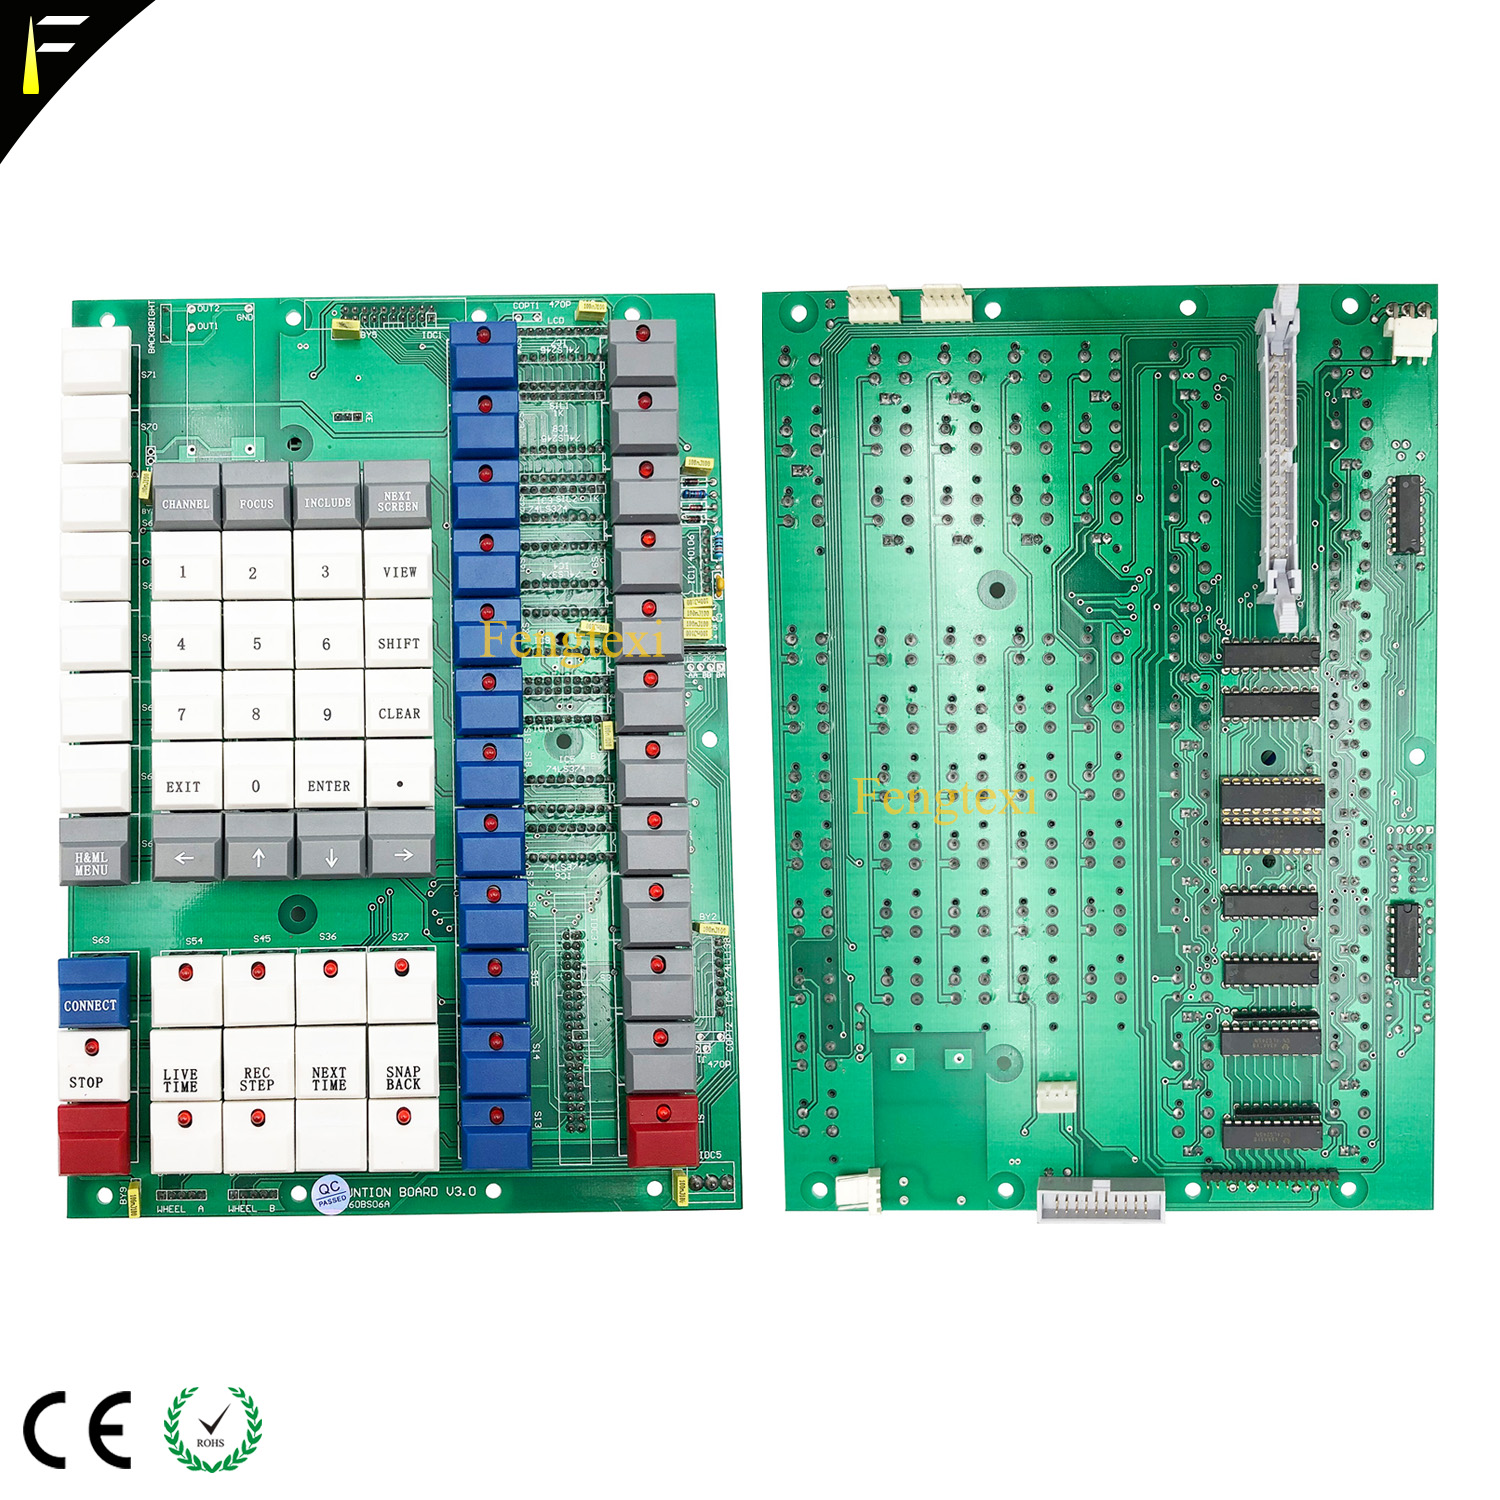 All New 2010 Pearl Controller Function Operate Mother Board 2008 Pearl Console Editor Board Function Board with All Buttons